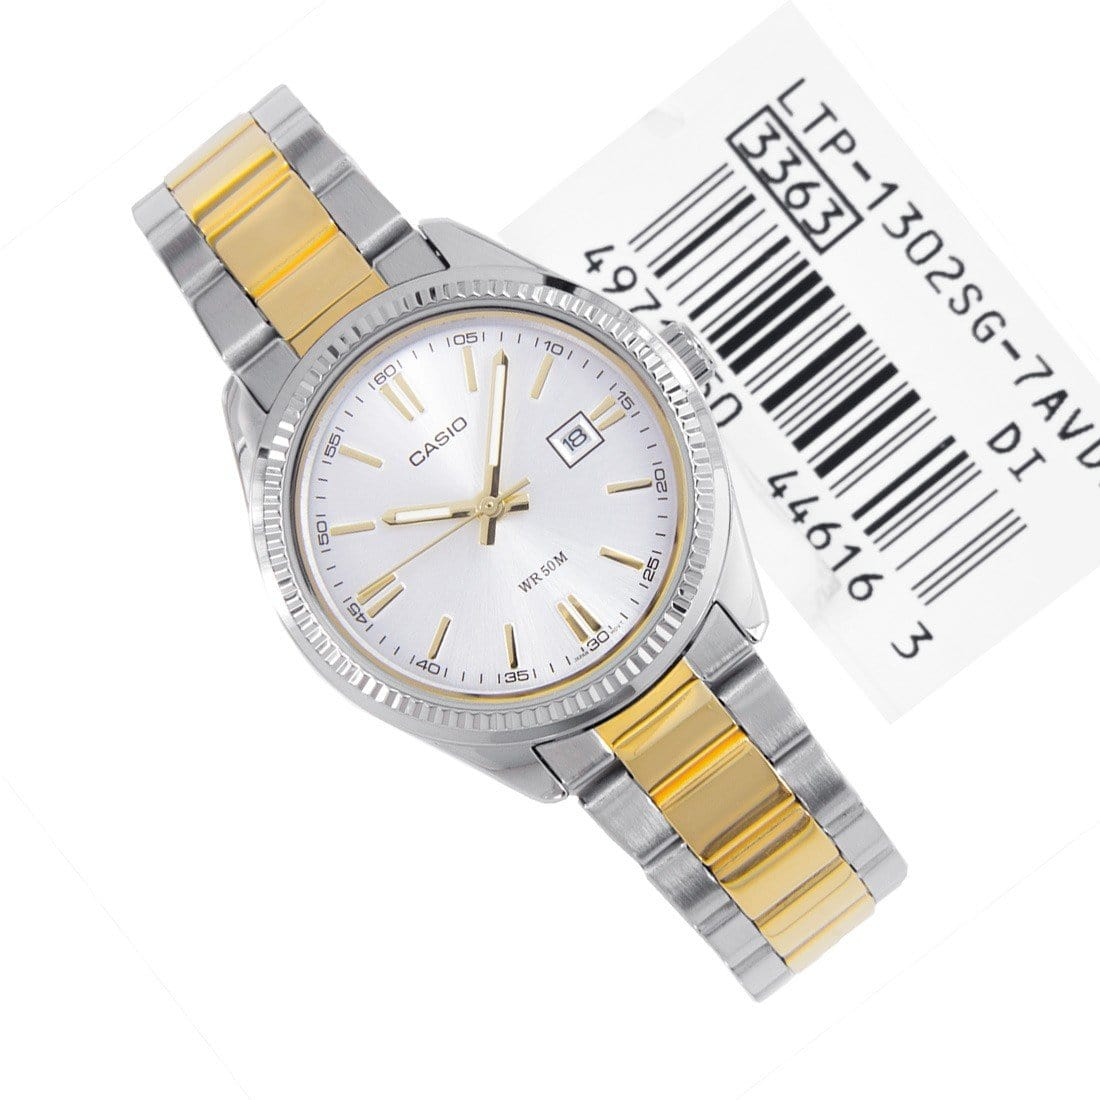 Casio 7av Ladies Enticer Analog Watch Ltp 1302sg 7a NyvOPmwn80